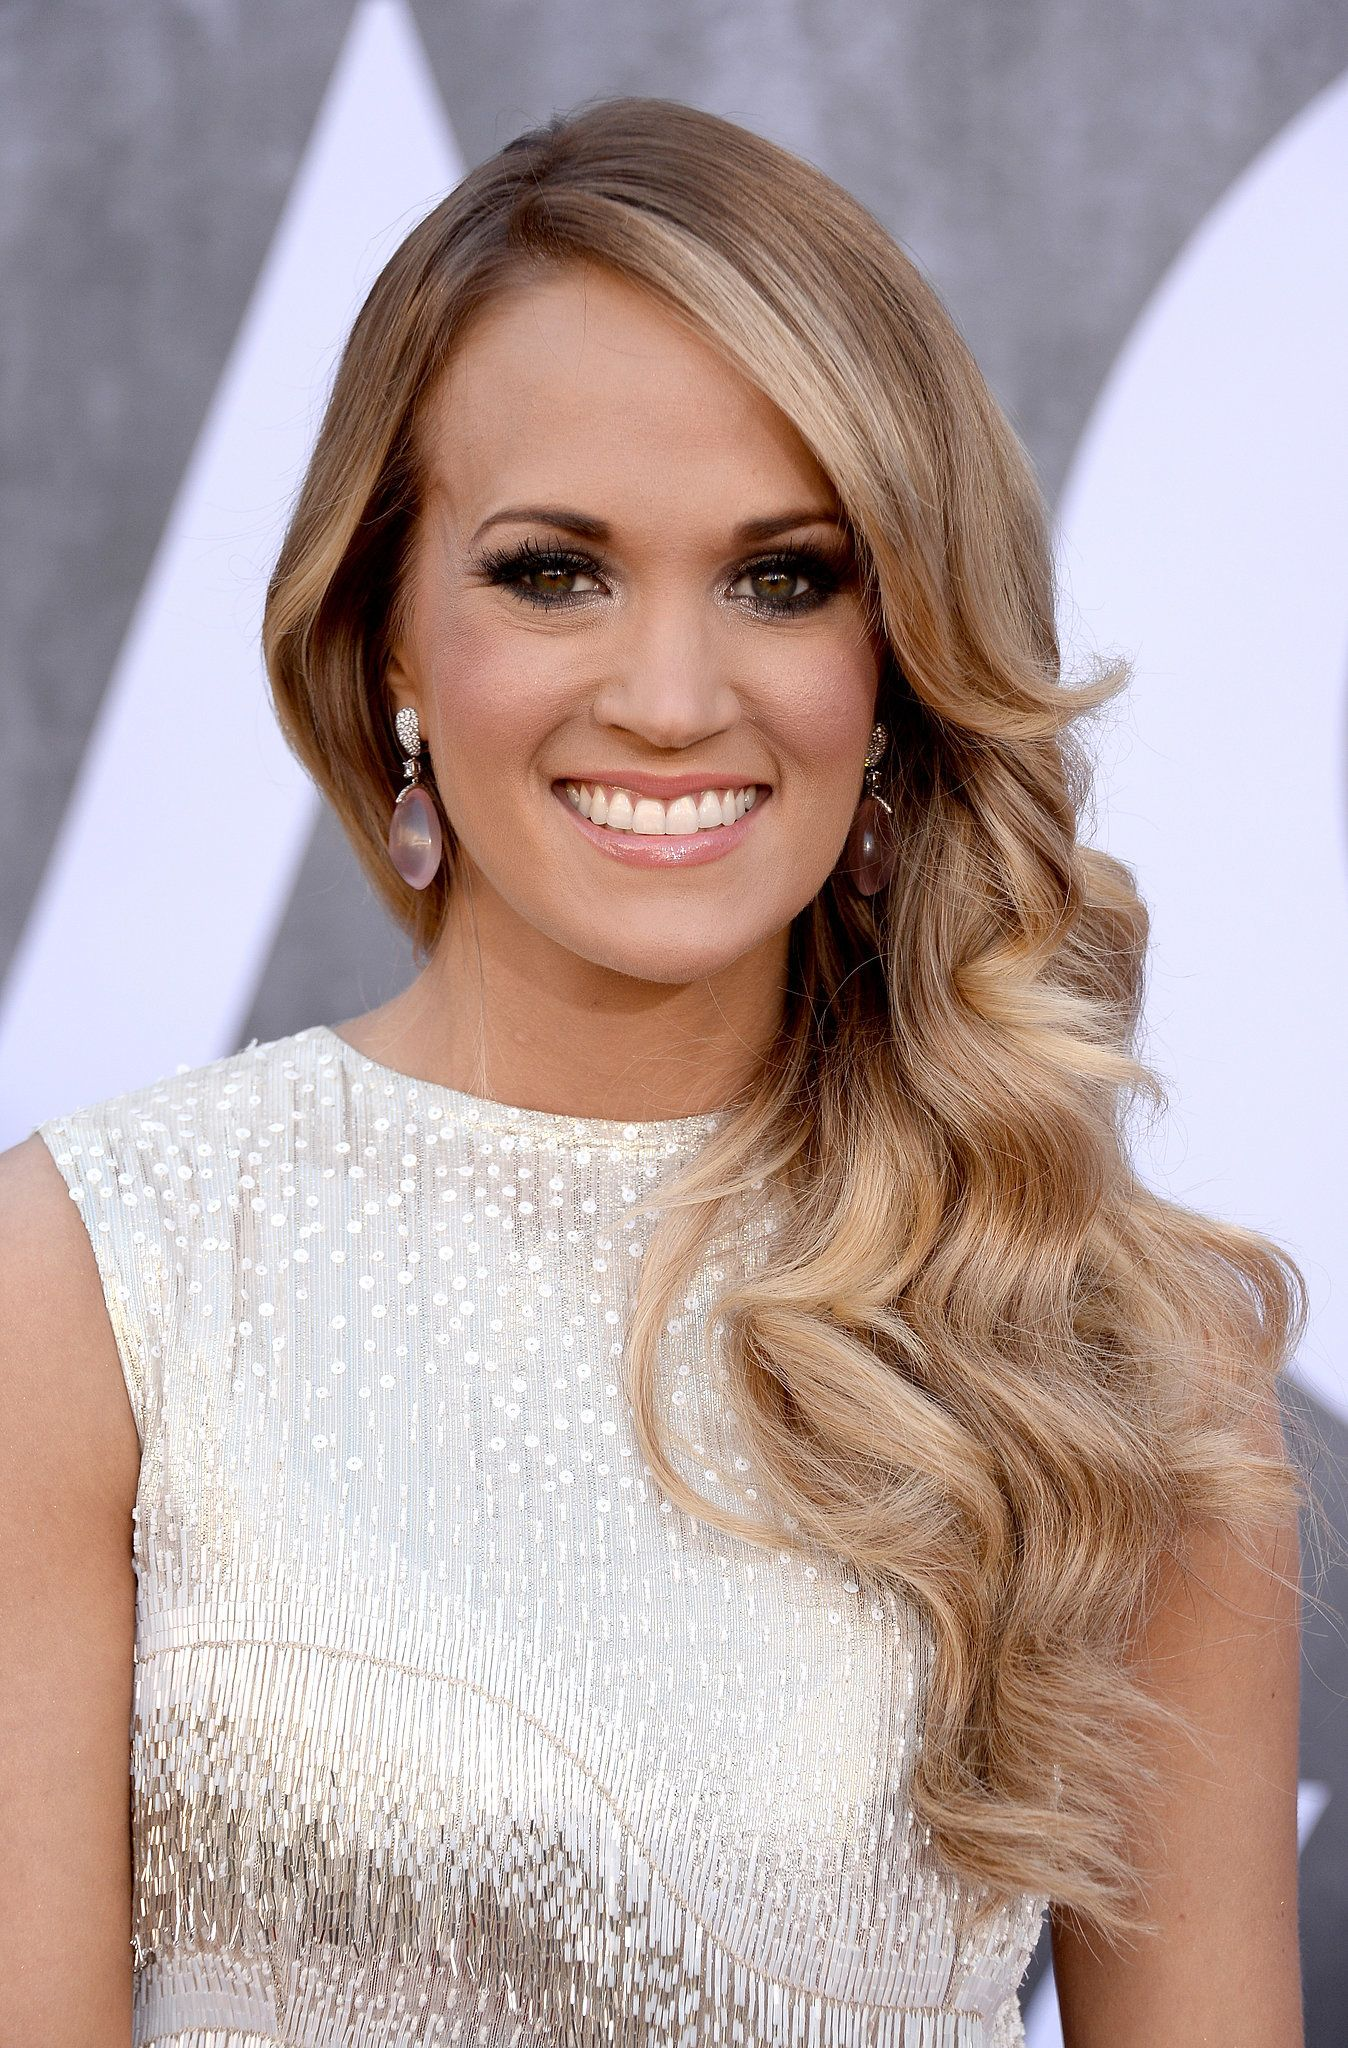 At The Academy Of Country Music Awards, Carrie Underwood Threw Her Curls To  One Side